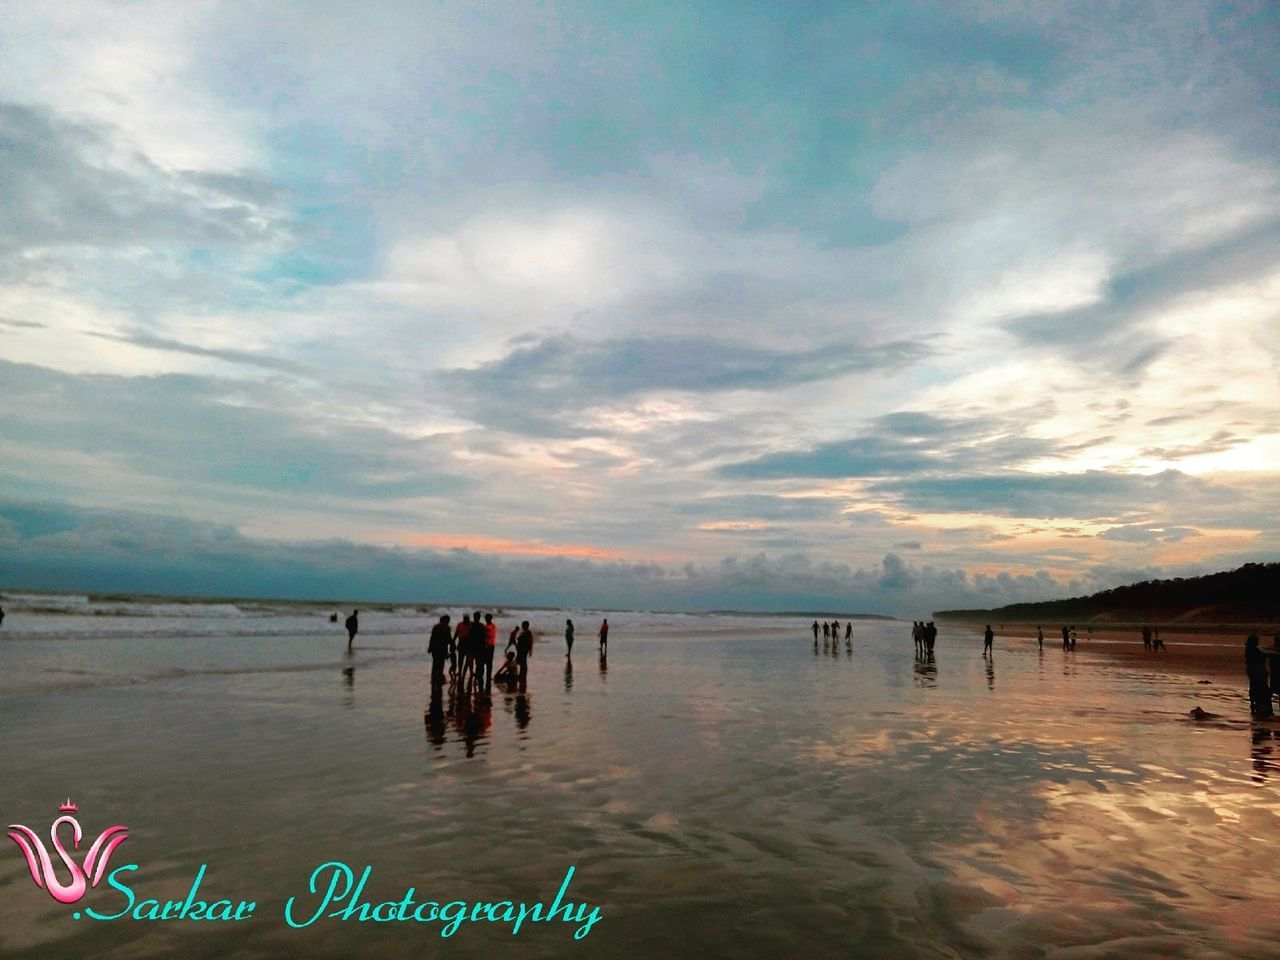 water, sky, cloud - sky, vacations, nature, large group of people, lake, tranquility, beauty in nature, scenics, swimming, outdoors, beach, real people, day, women, men, people